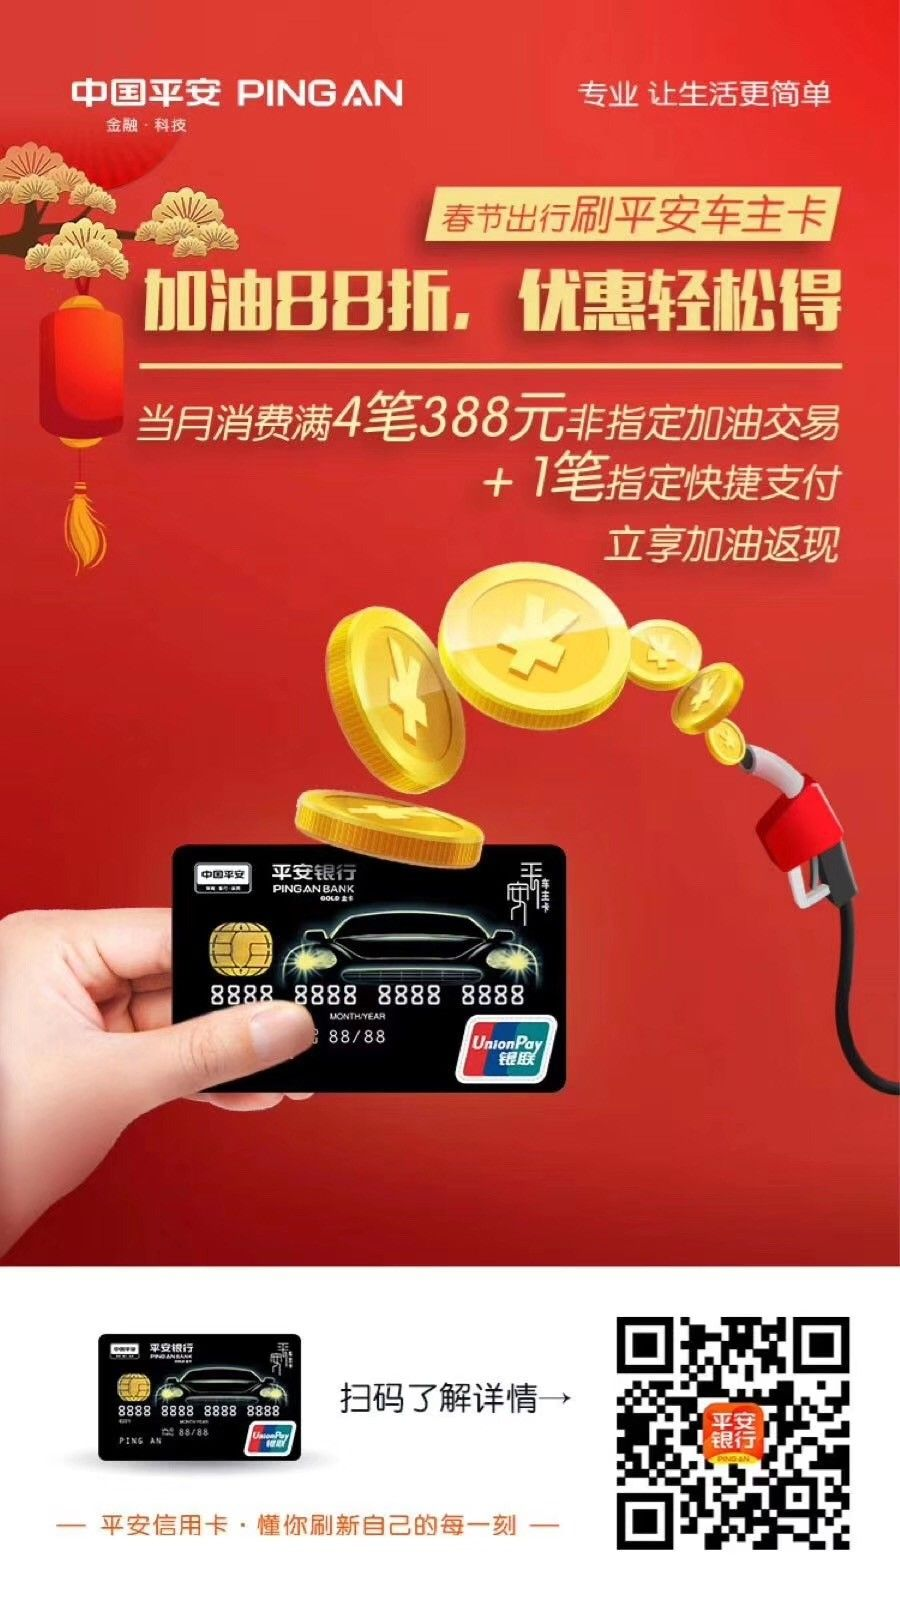 Image by Long William on Chinese Ads Banks advertising